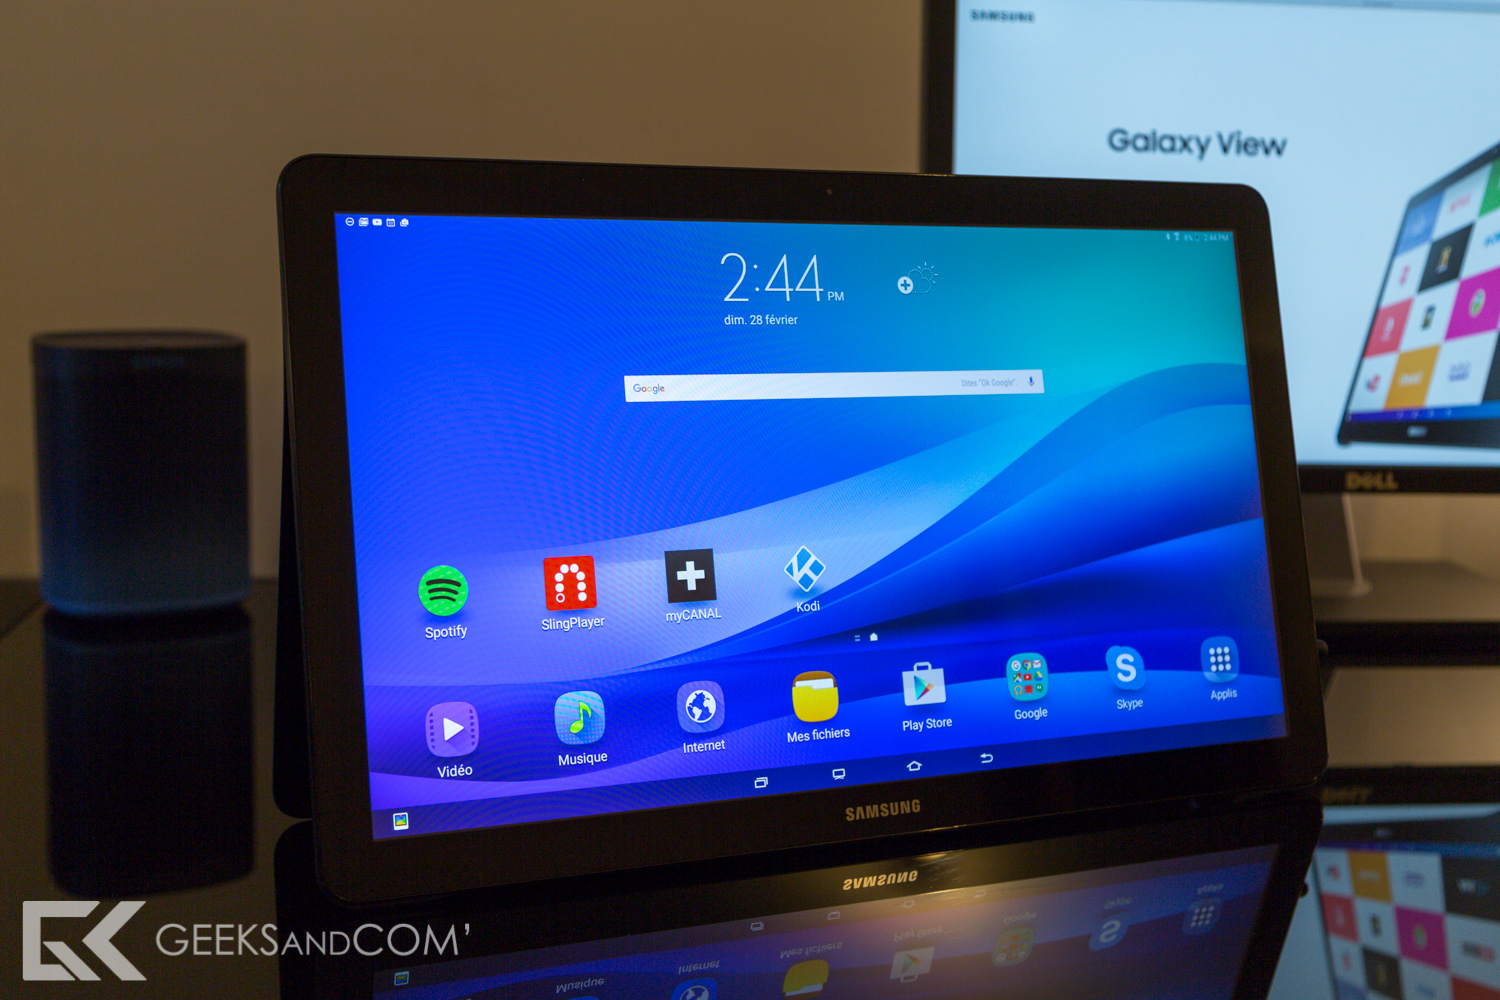 Samsung Galaxy View - Tablette Android - Test Geeks and Com -13